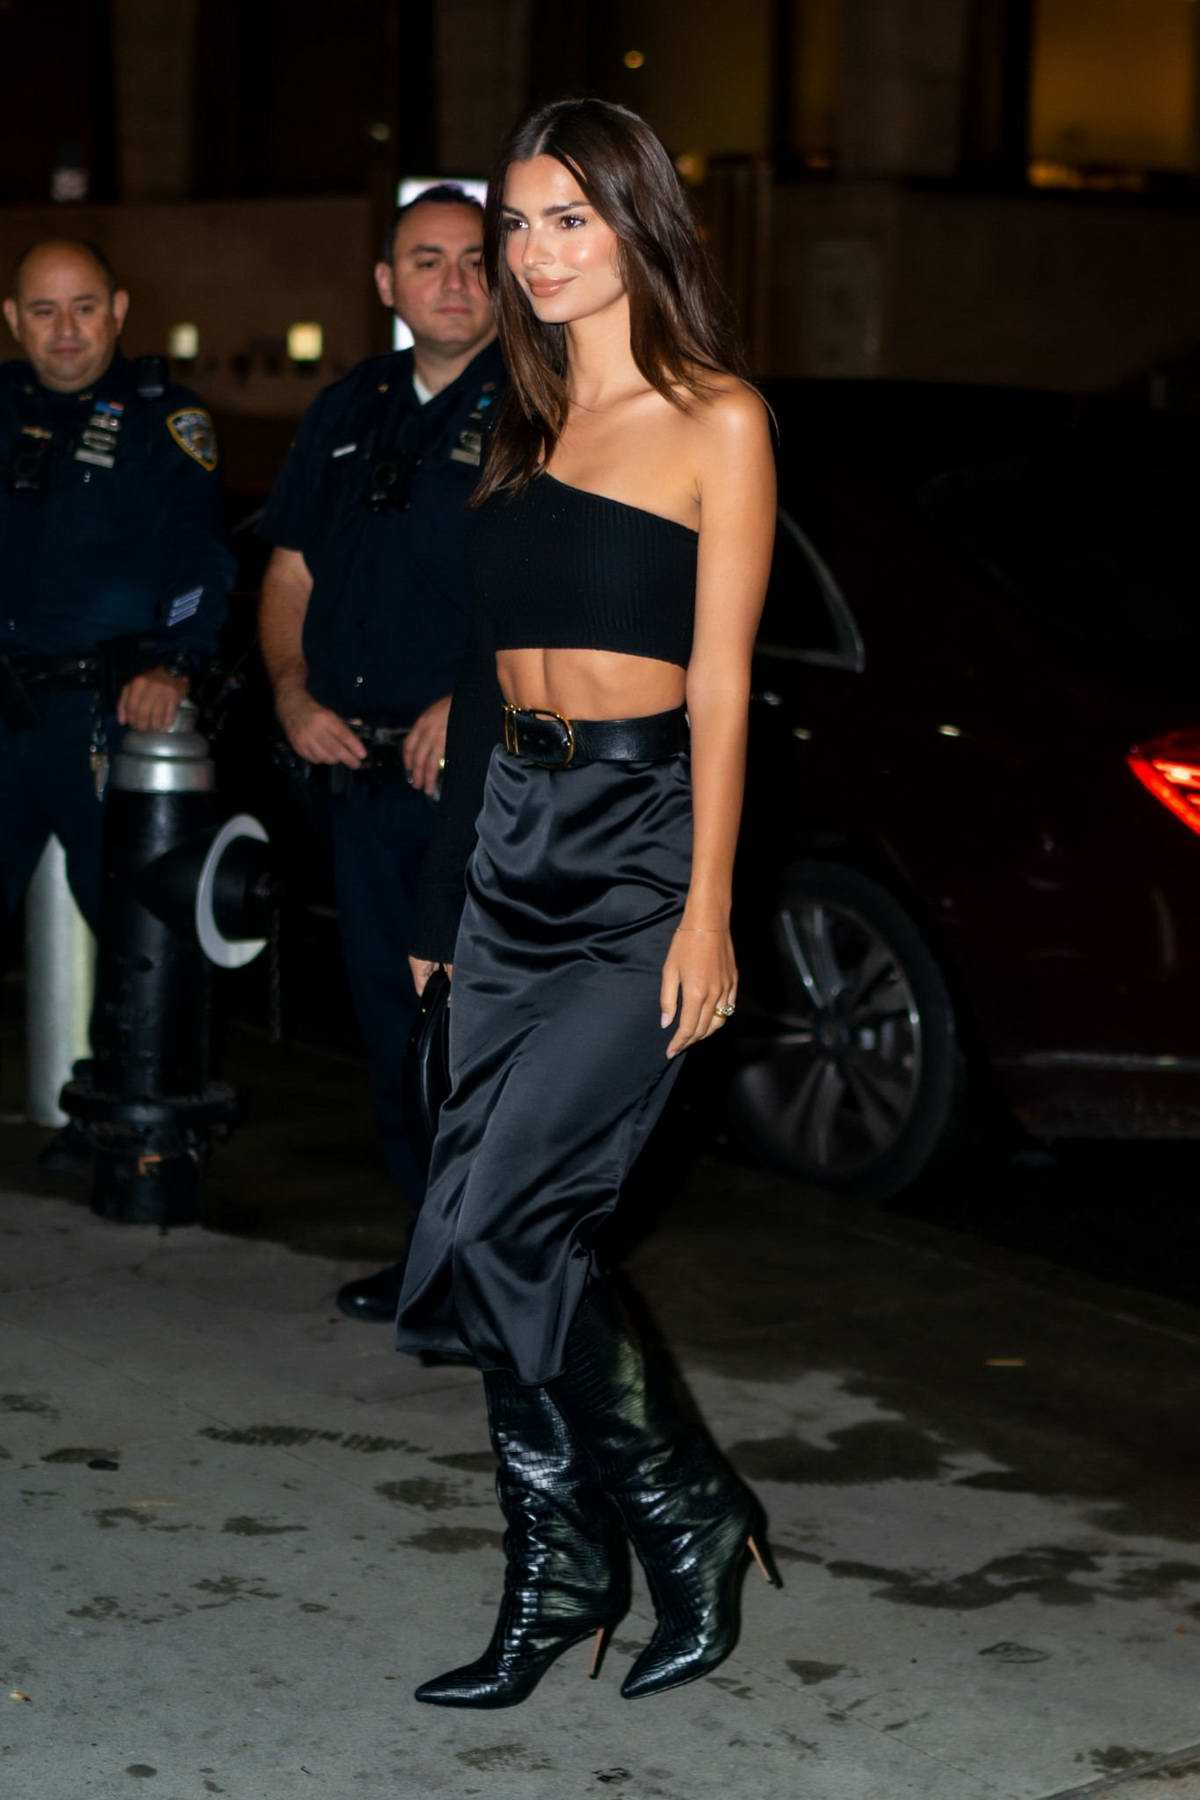 Emily Ratajkowski attends the screening for 'Uncut Gems' During the 57th New York Film Festival in New York City